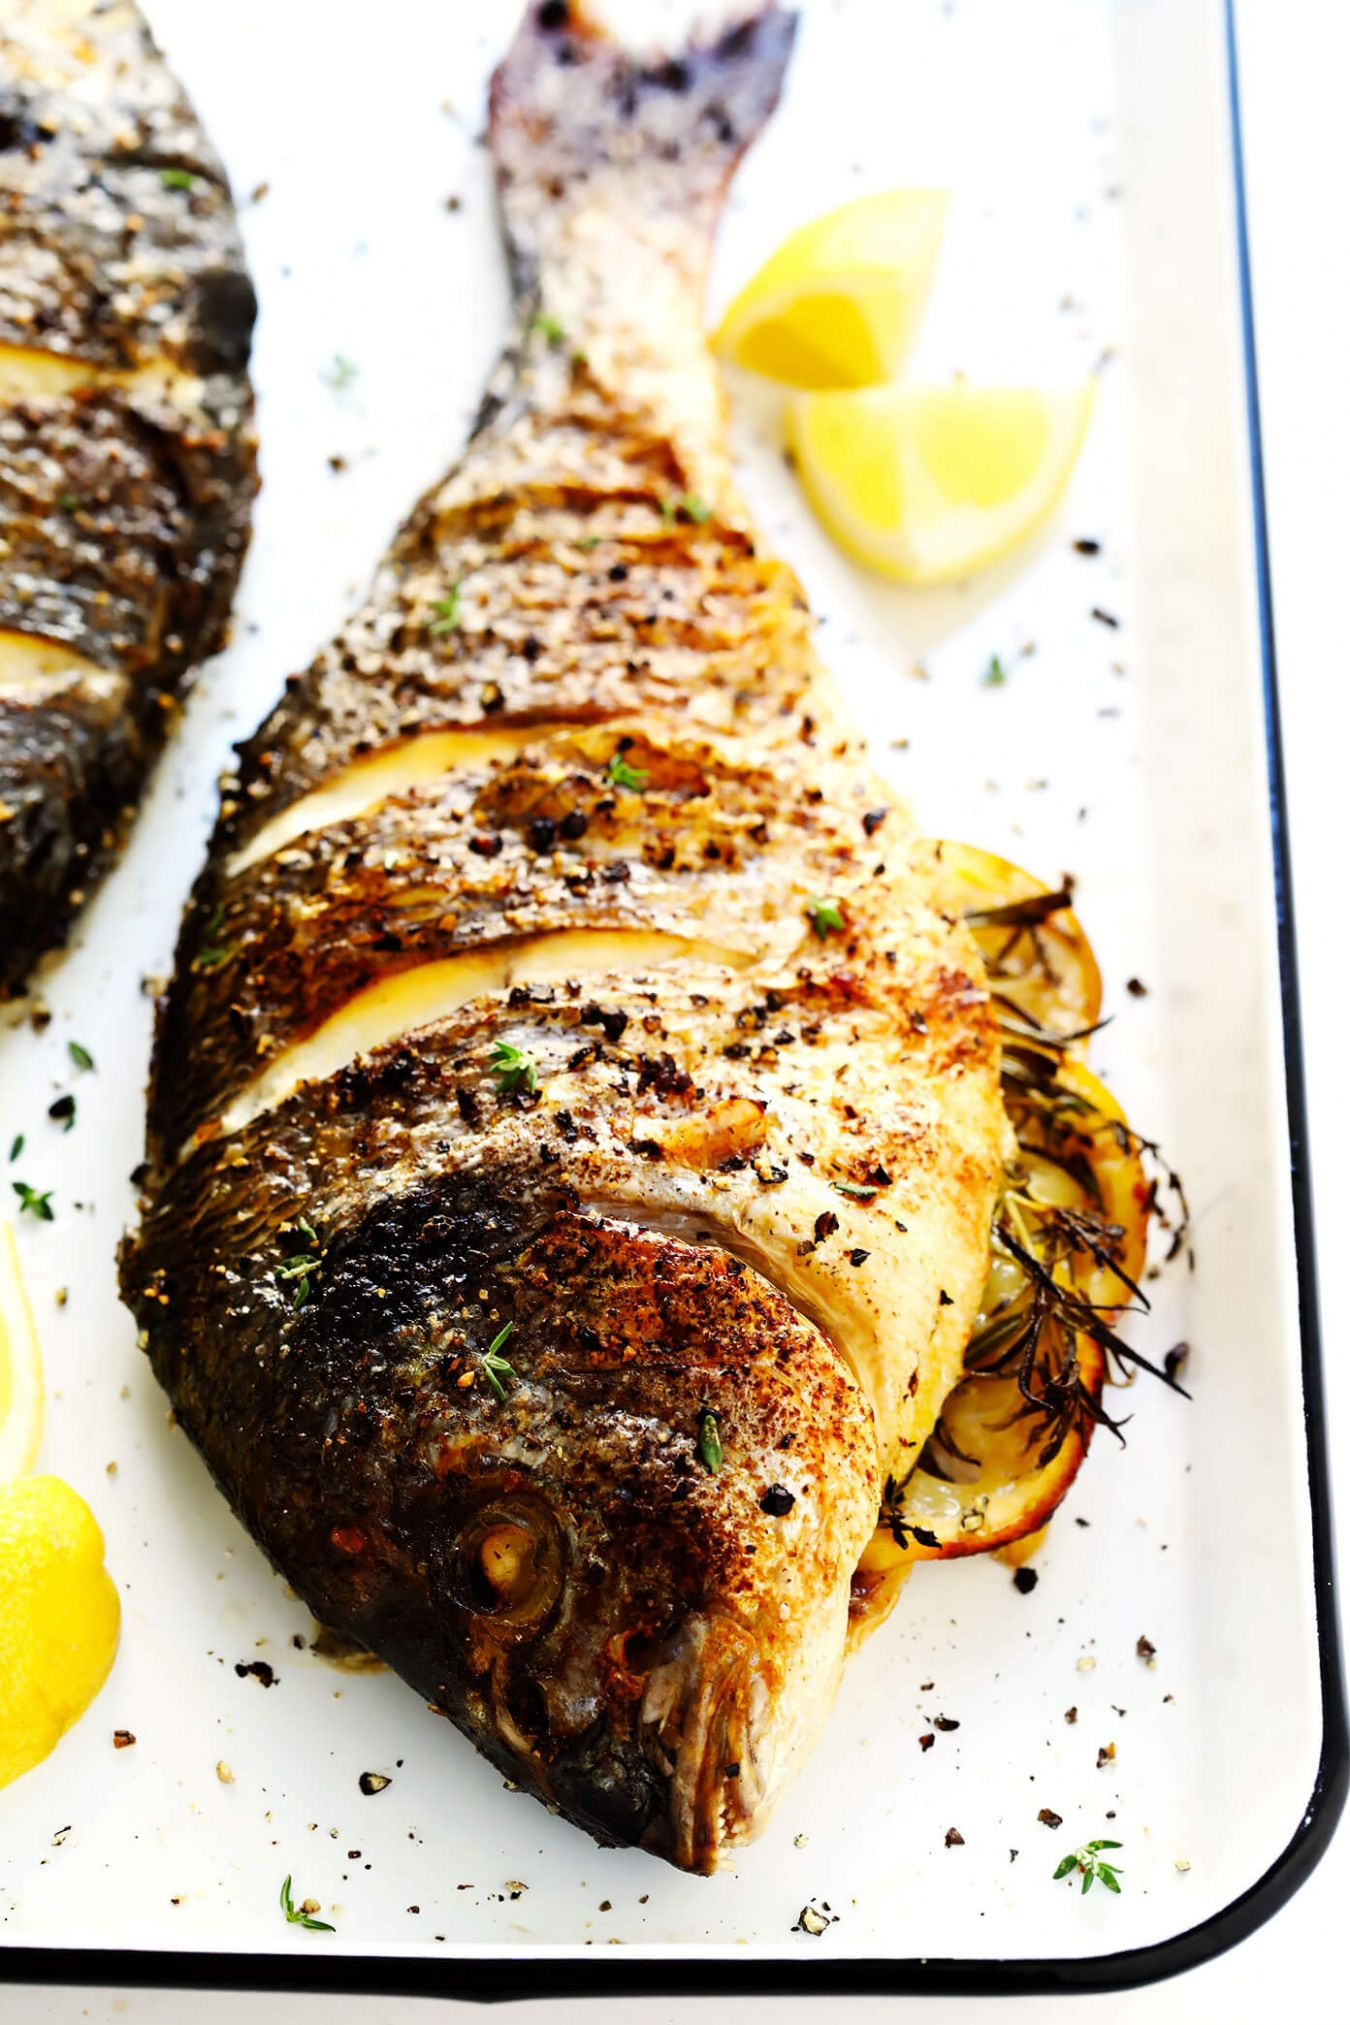 How To Cook A Whole Fish | Gimme Some Oven - Recipes Fish In The Oven